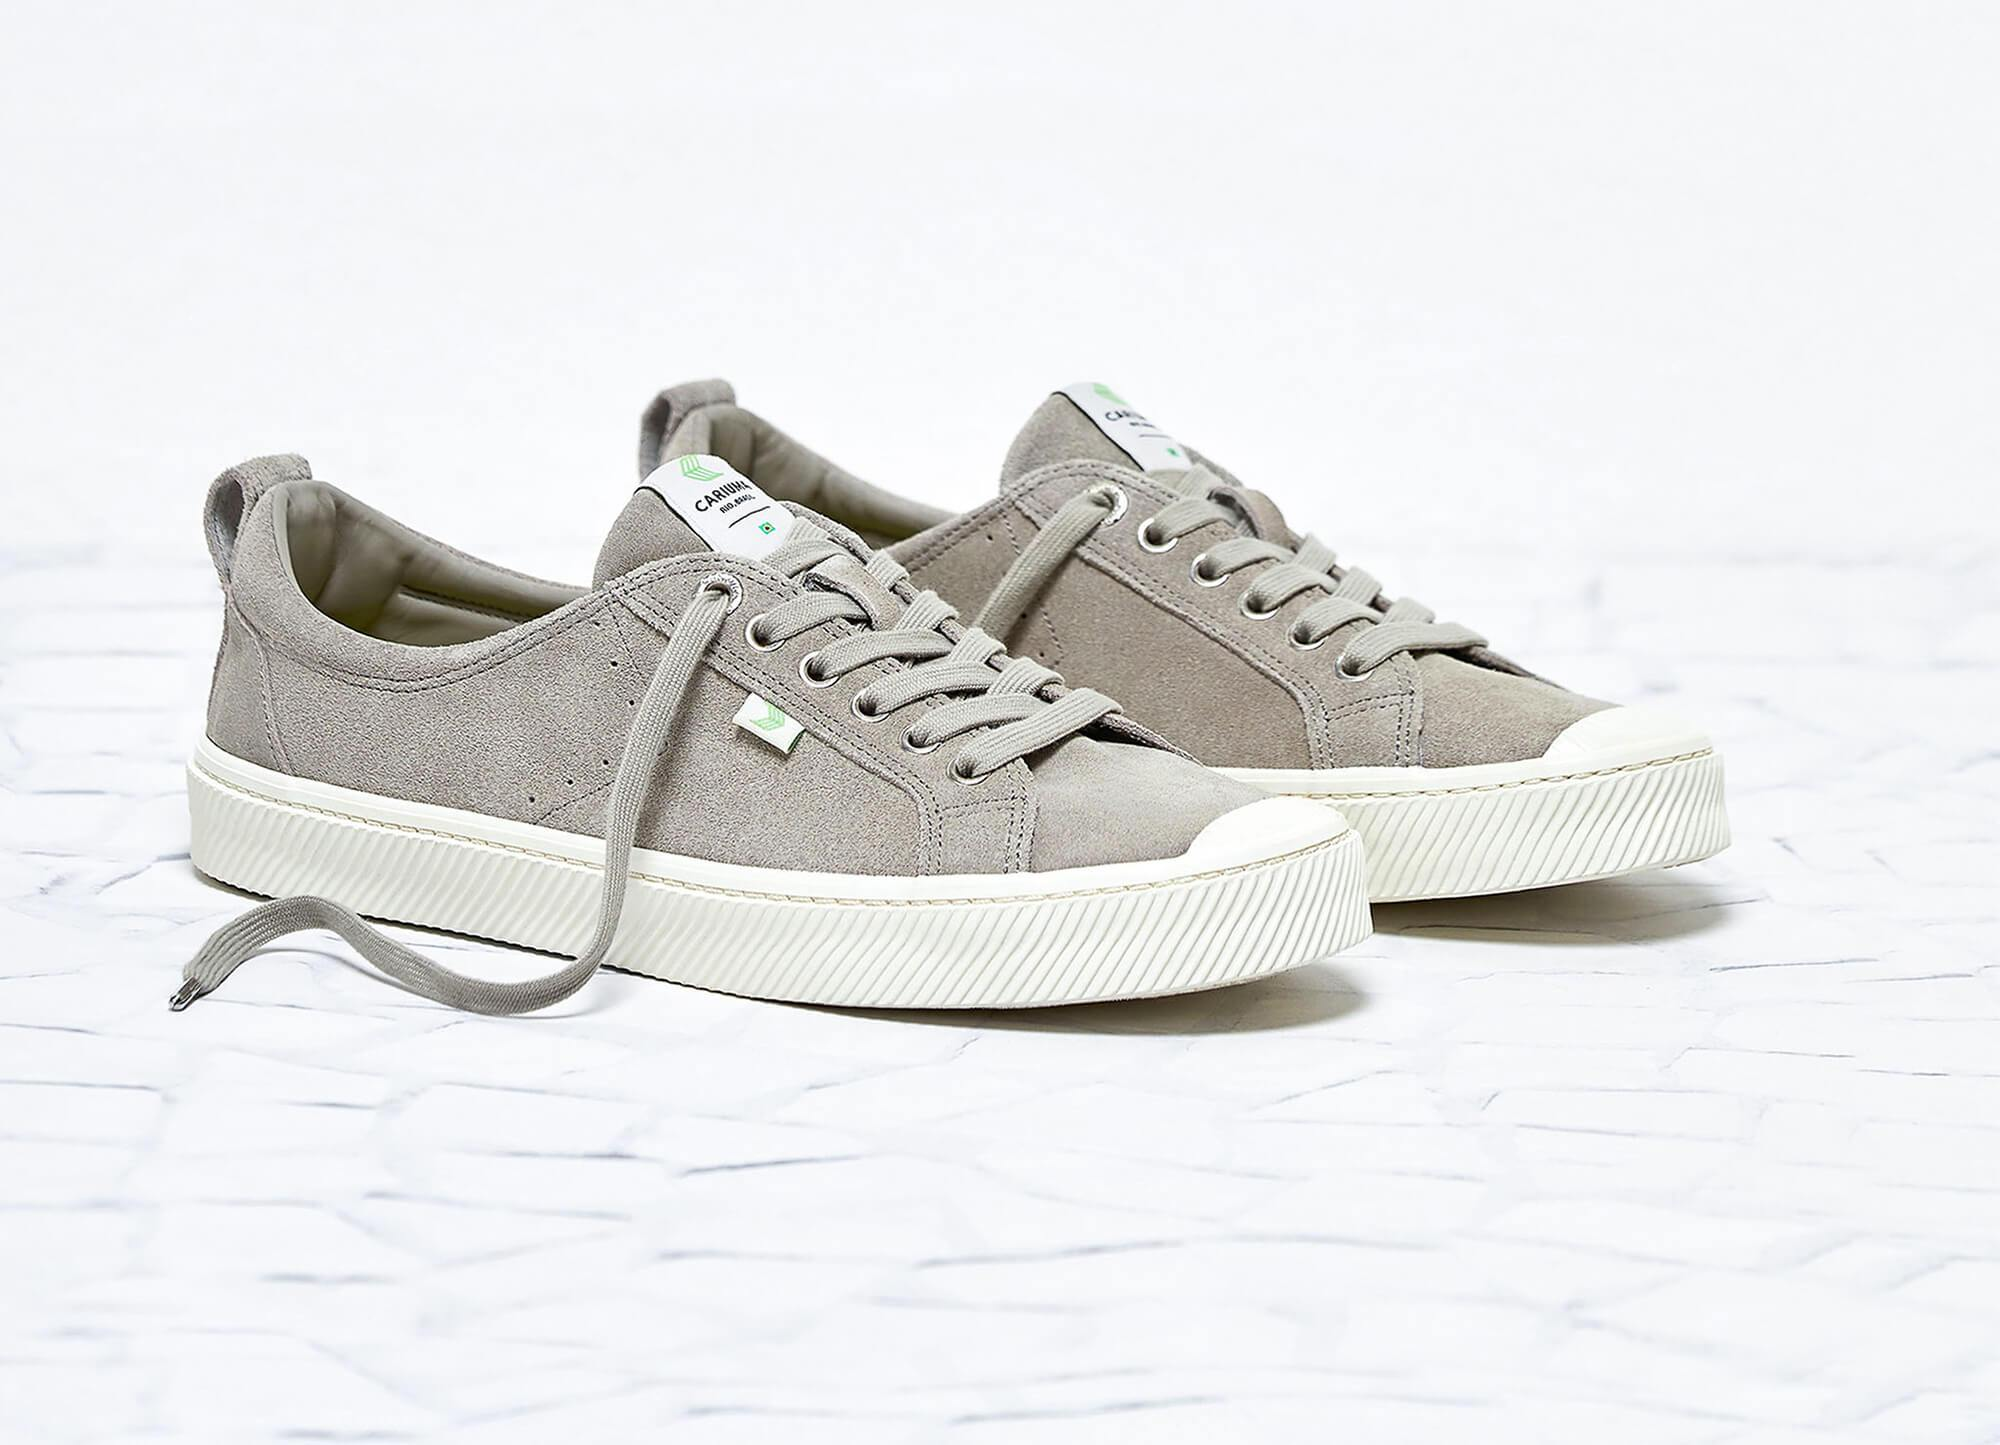 Cariuma OCA Low in Cloud Grey Suede